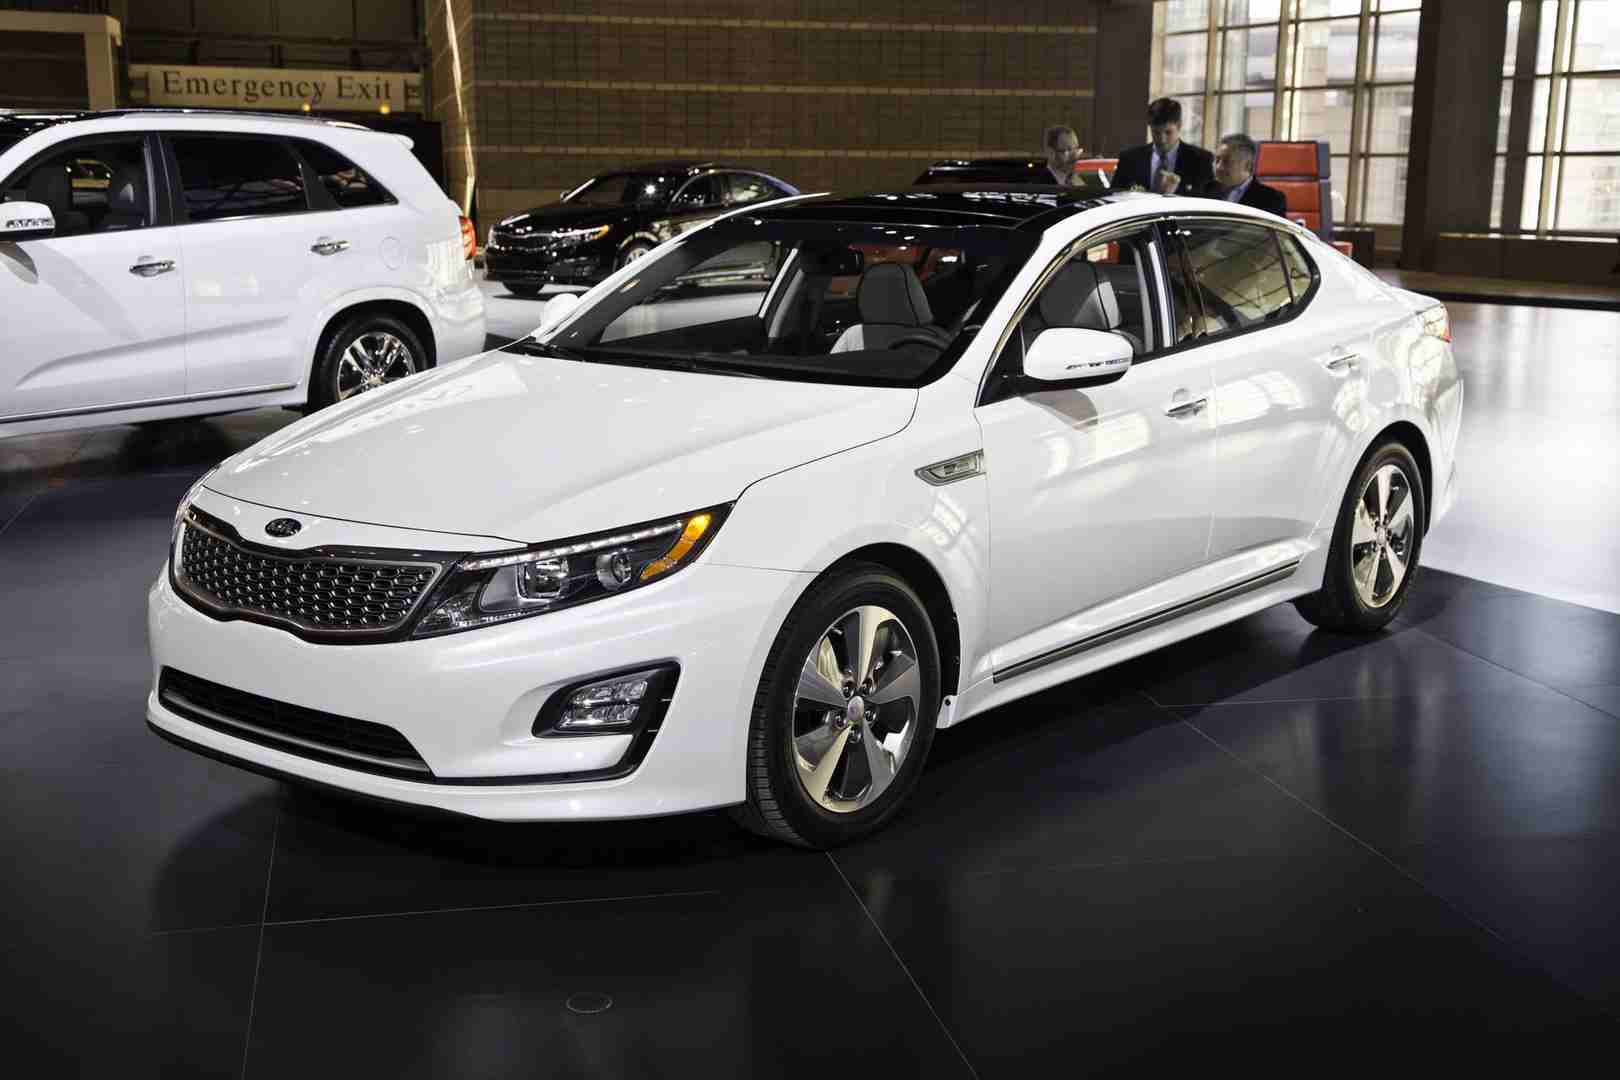 Midsize Sedan: 2015 Kia Optima